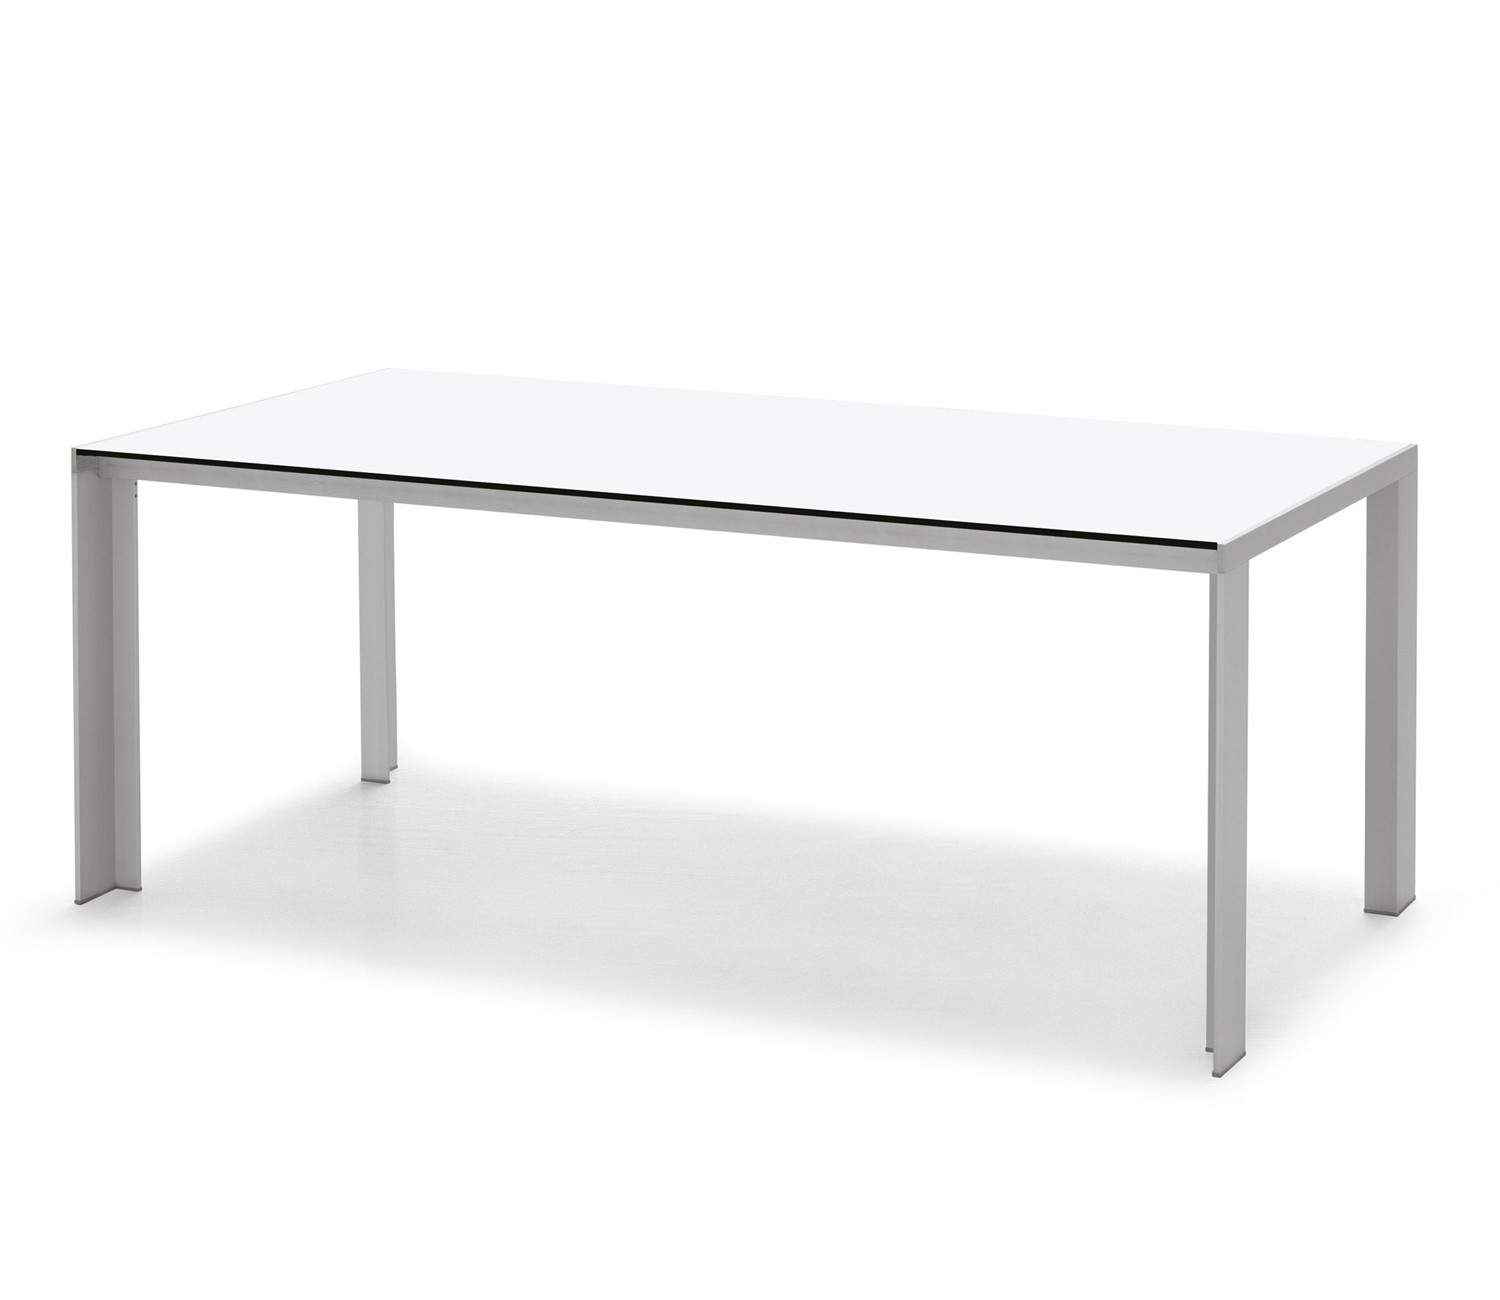 Deneb hpl tables for commercial offices outdoor areas for Table exterieur hpl